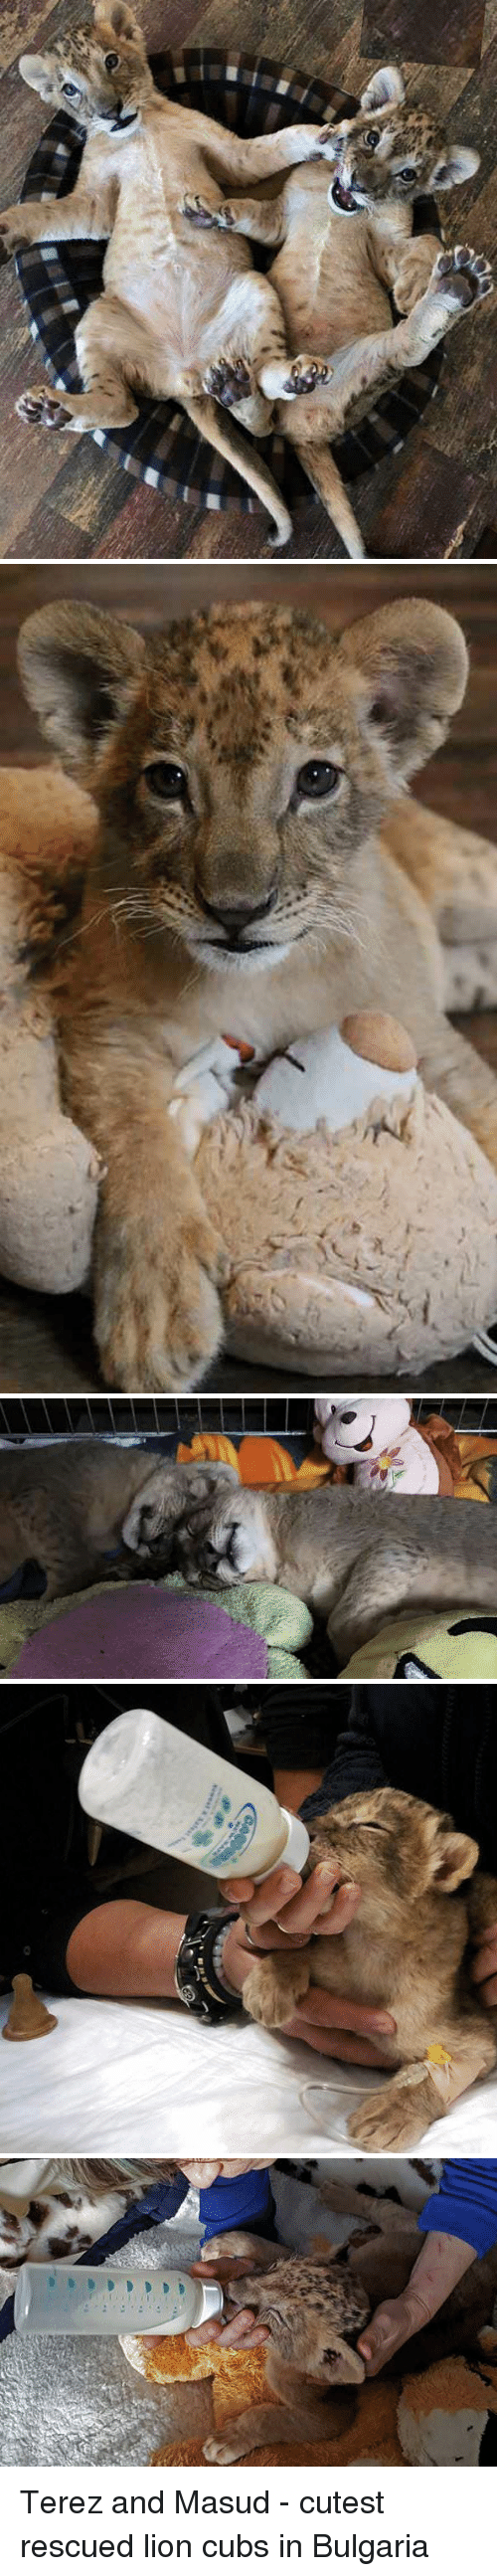 Bulgaria: Terez and Masud - cutest rescued lion cubs in Bulgaria